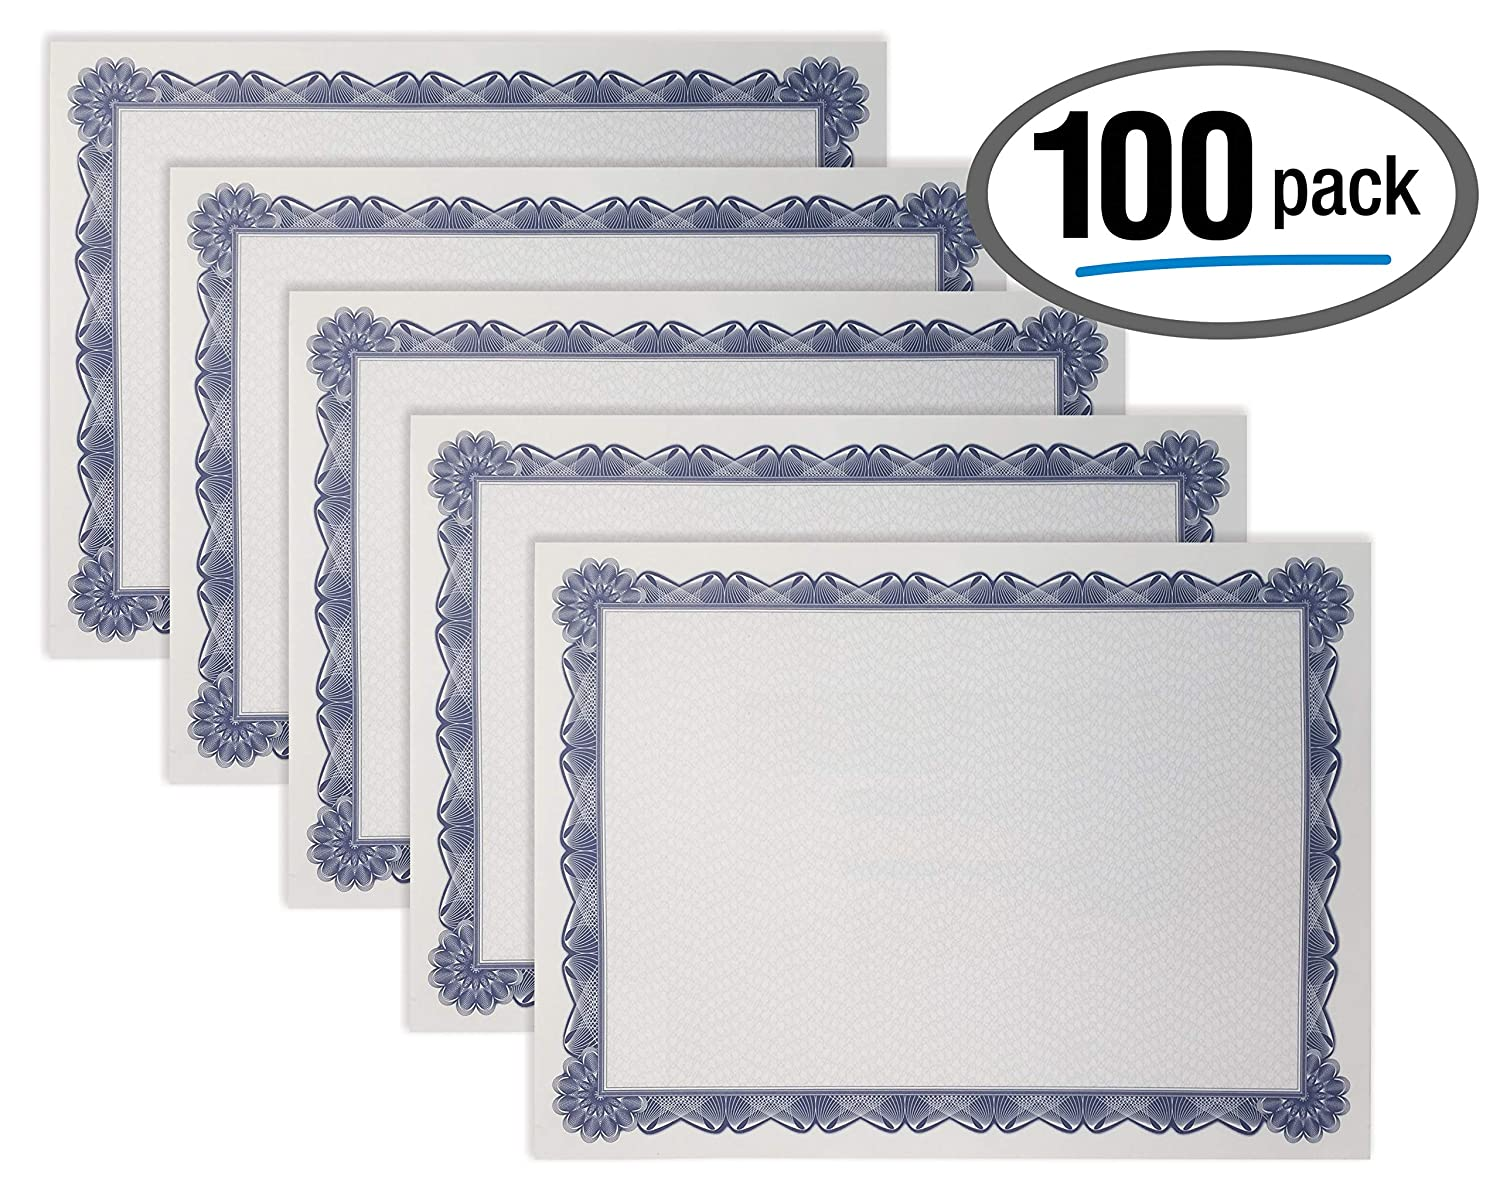 100 Sheet Certificate Paper, Blue Border, Letter Size Blank Paper, by Better Office Products, Specialty Award, Diploma Certificate Paper, Laser and Inkjet Printer Friendly, 8.5 x 11 Inches, 100 Count 91LpatkvH2BL